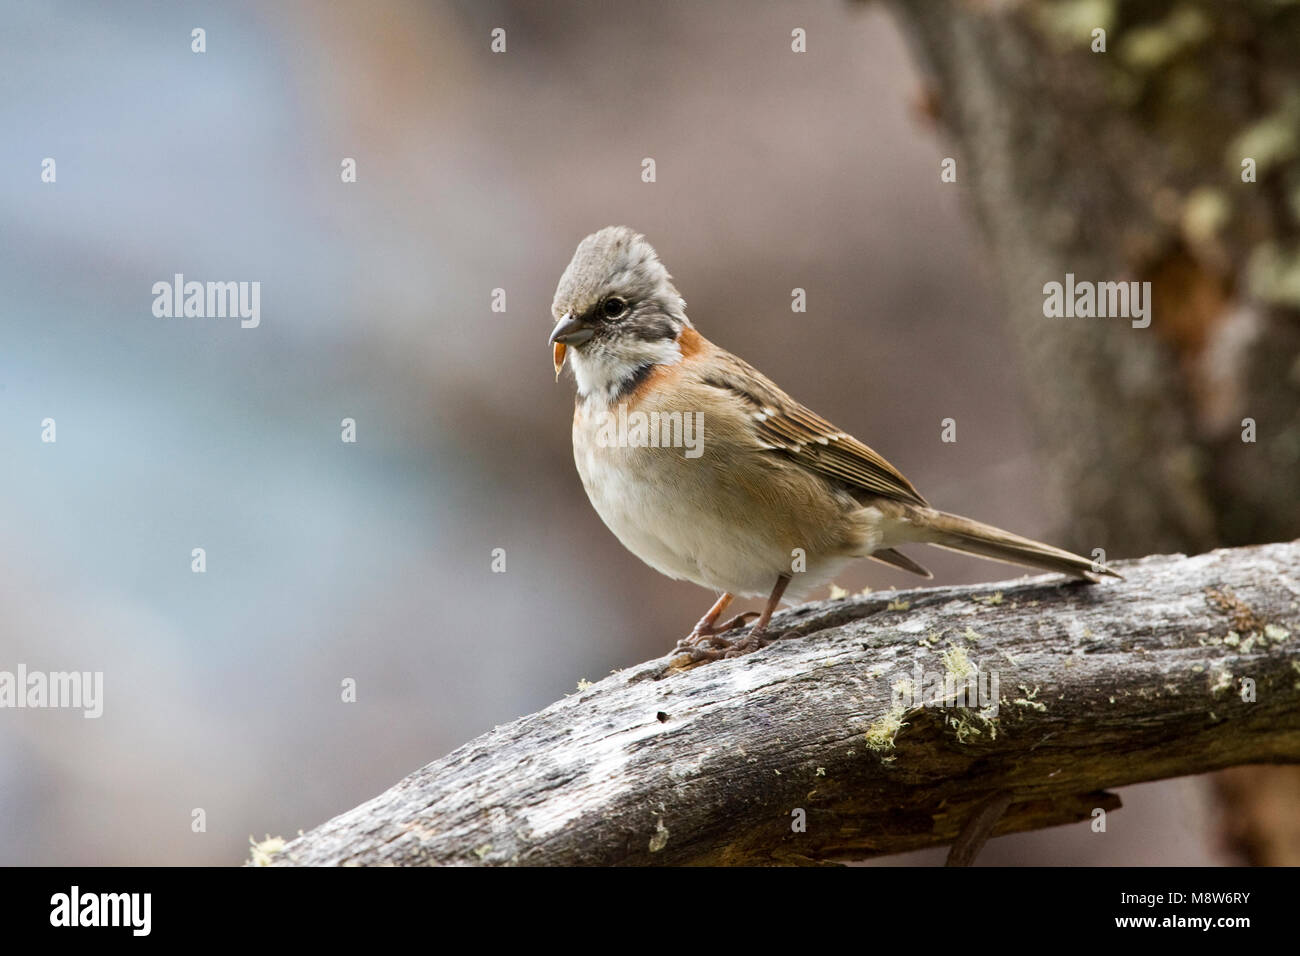 Roodkraaggors op een tak; Rufous-collared Sparrow perched on a branch Stock Photo